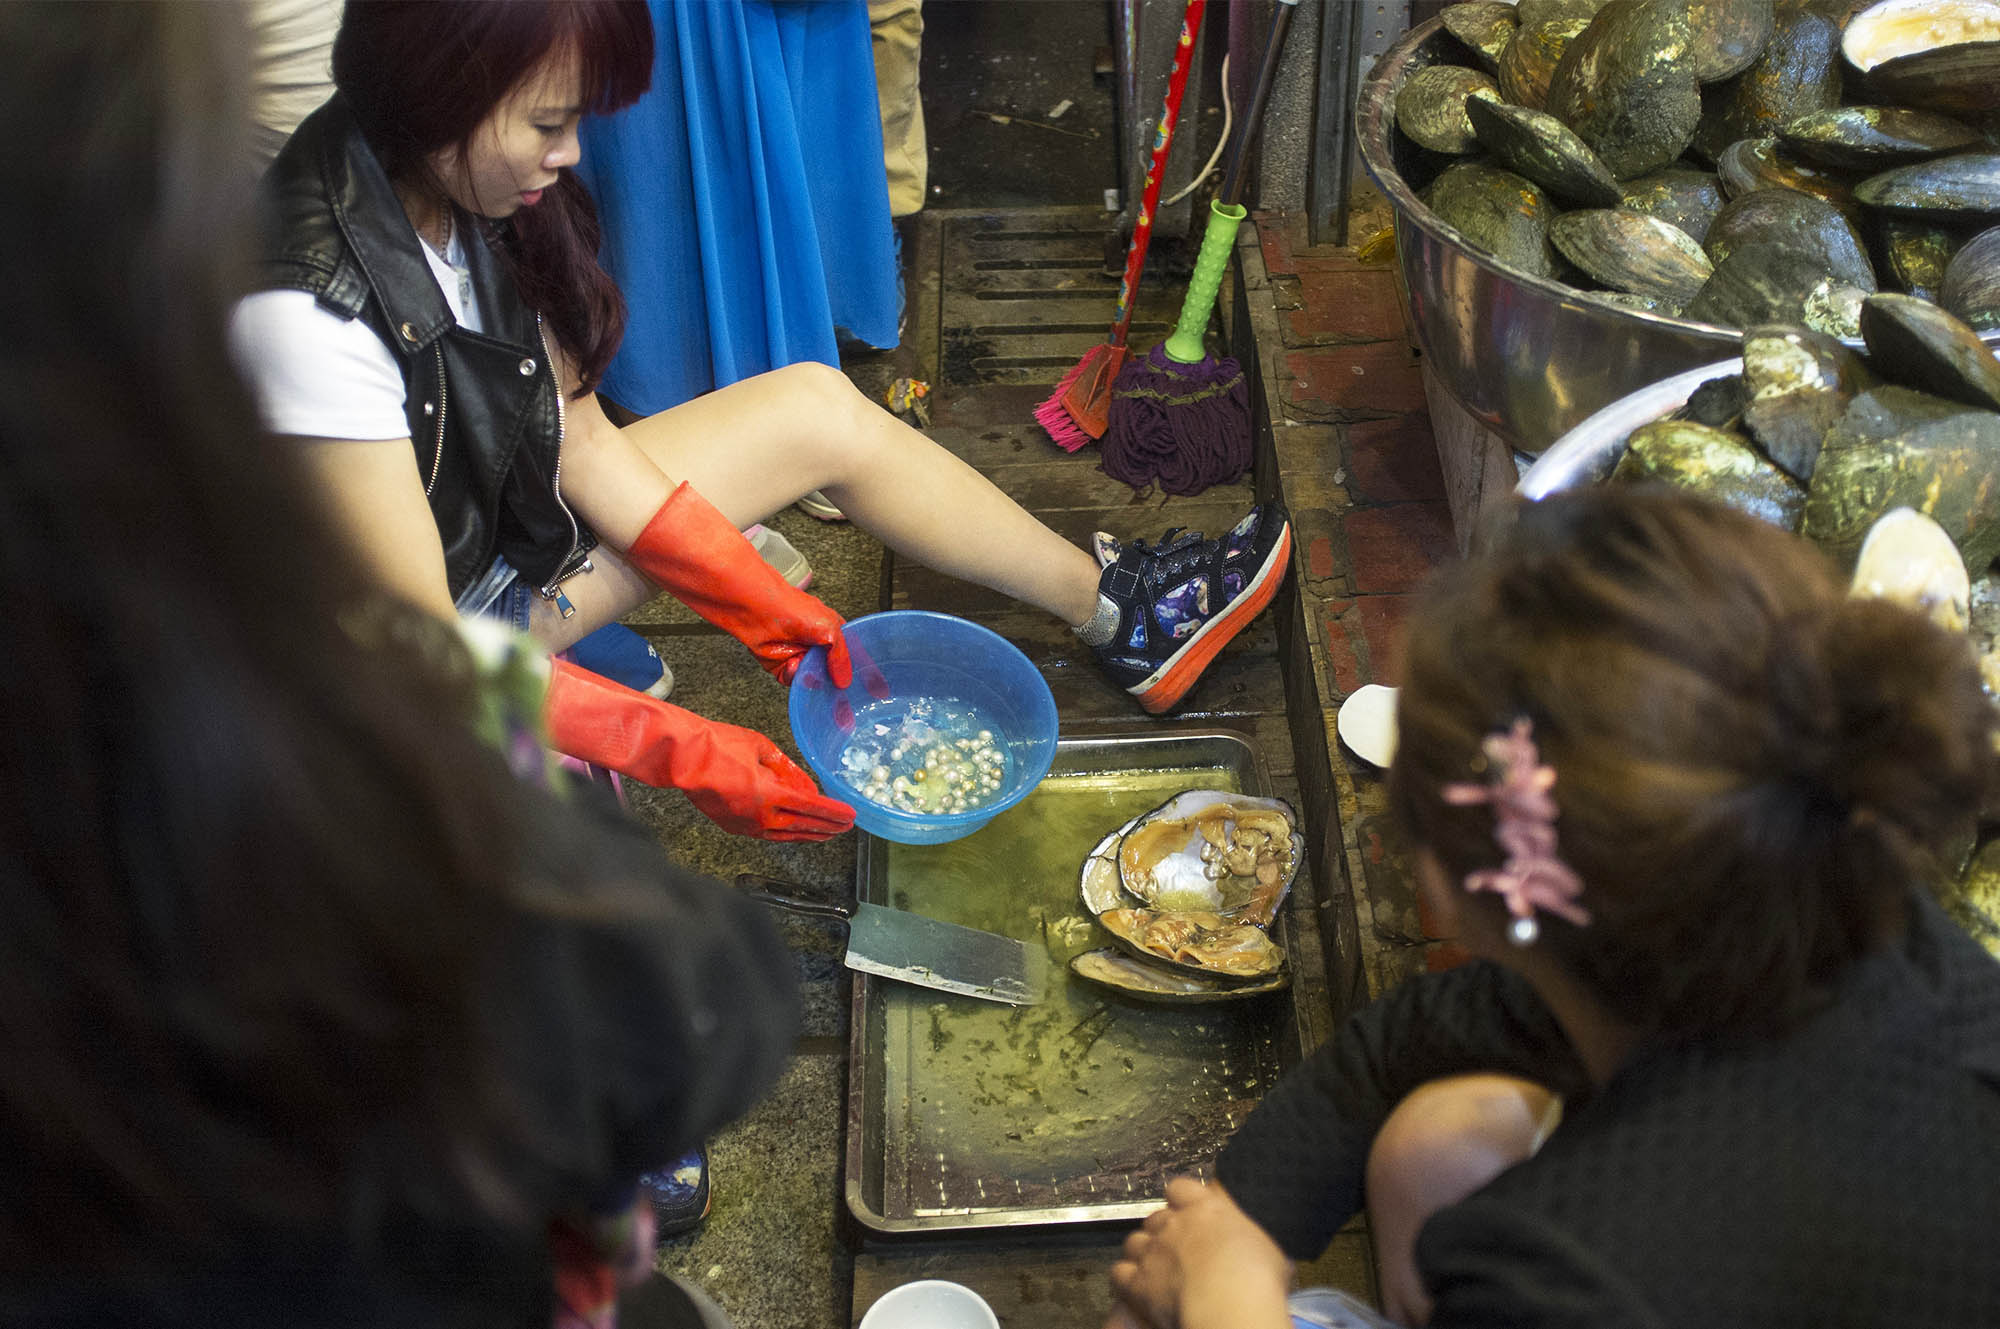 A shop owner is entertaining tourists by shelling mollusks.